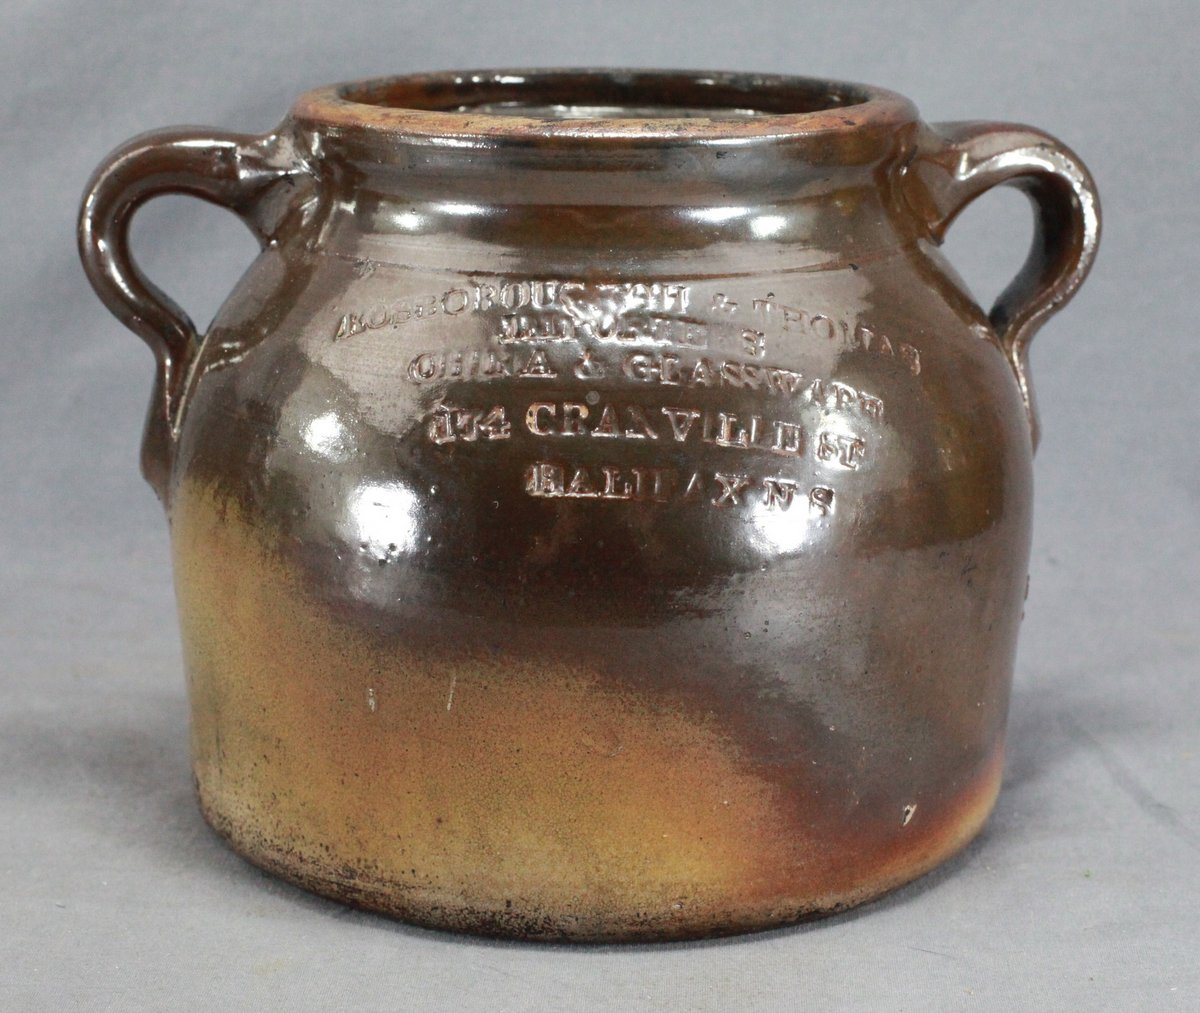 Halifax Merchant Bean Crock